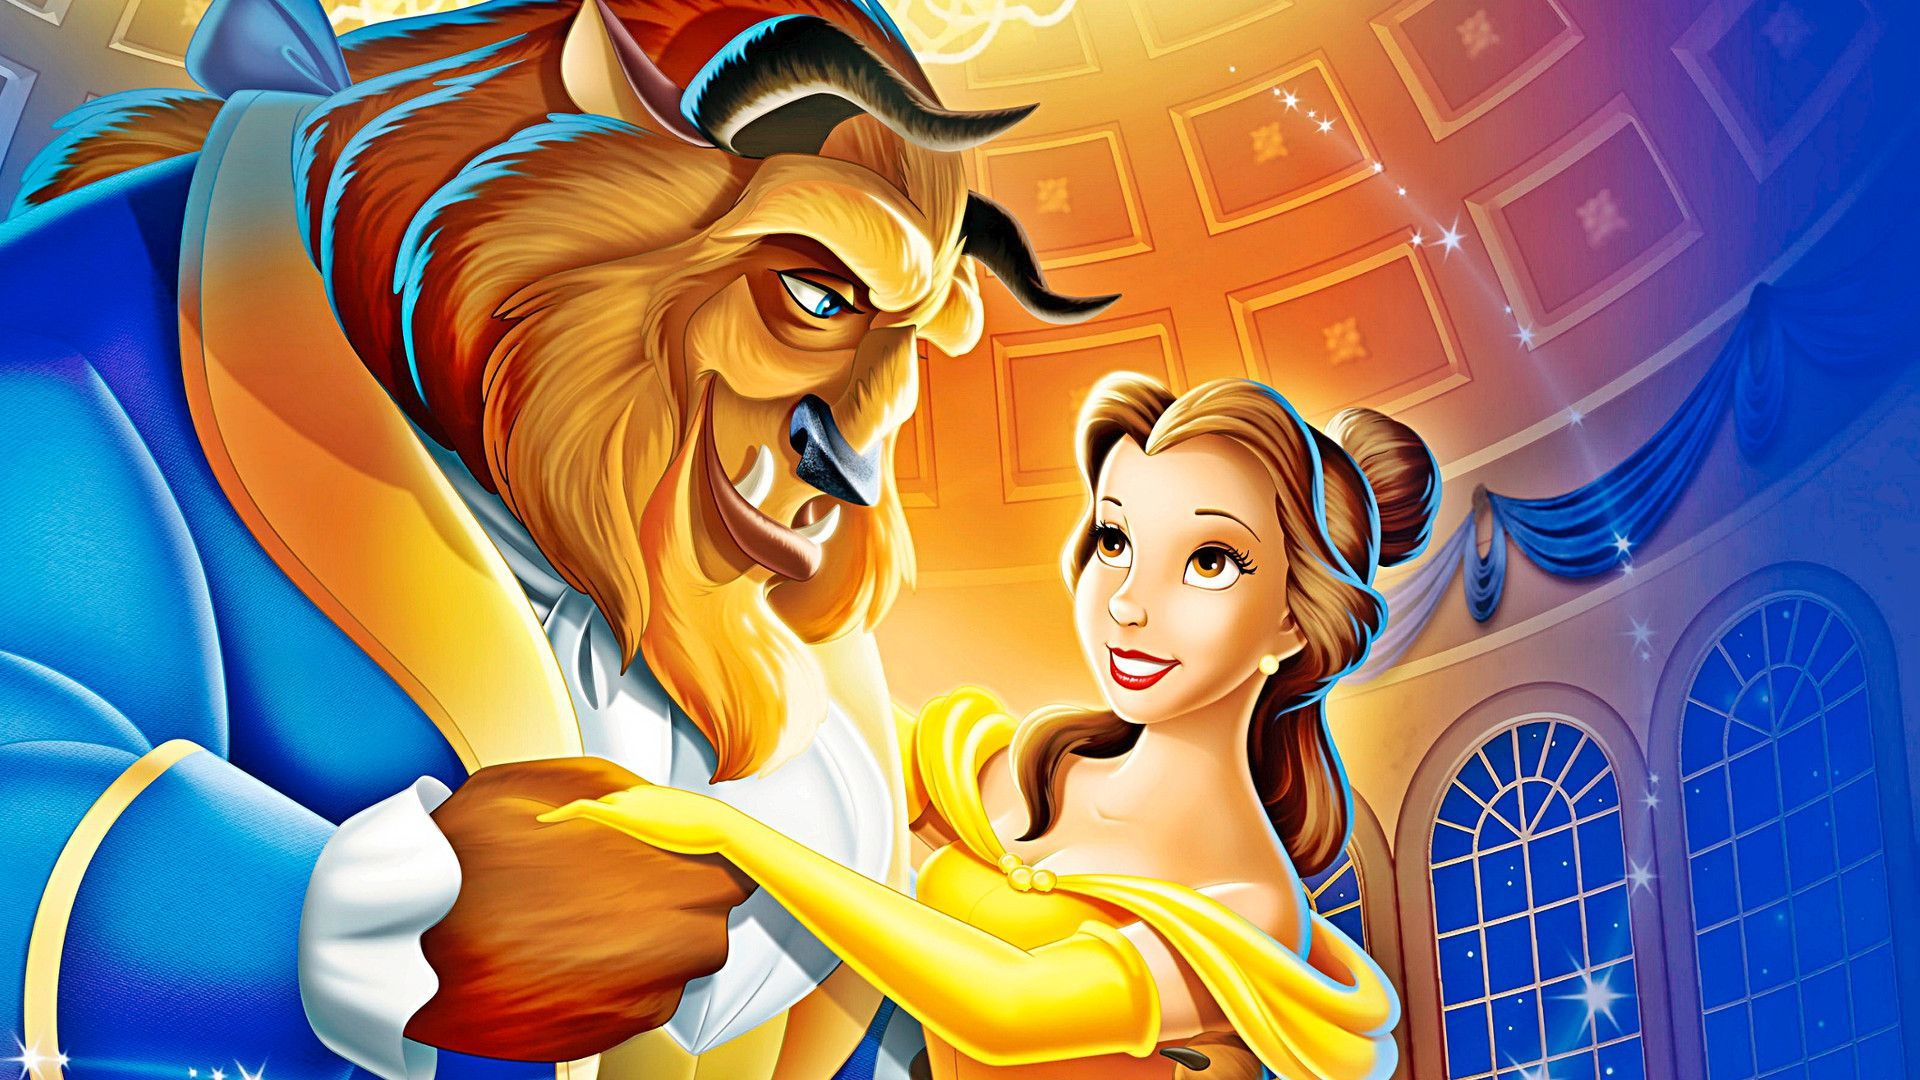 Beauty and the Beast Wallpaper HD Beauty and the Beast Disney Background & Beauty and the Beast Cast Theme HD